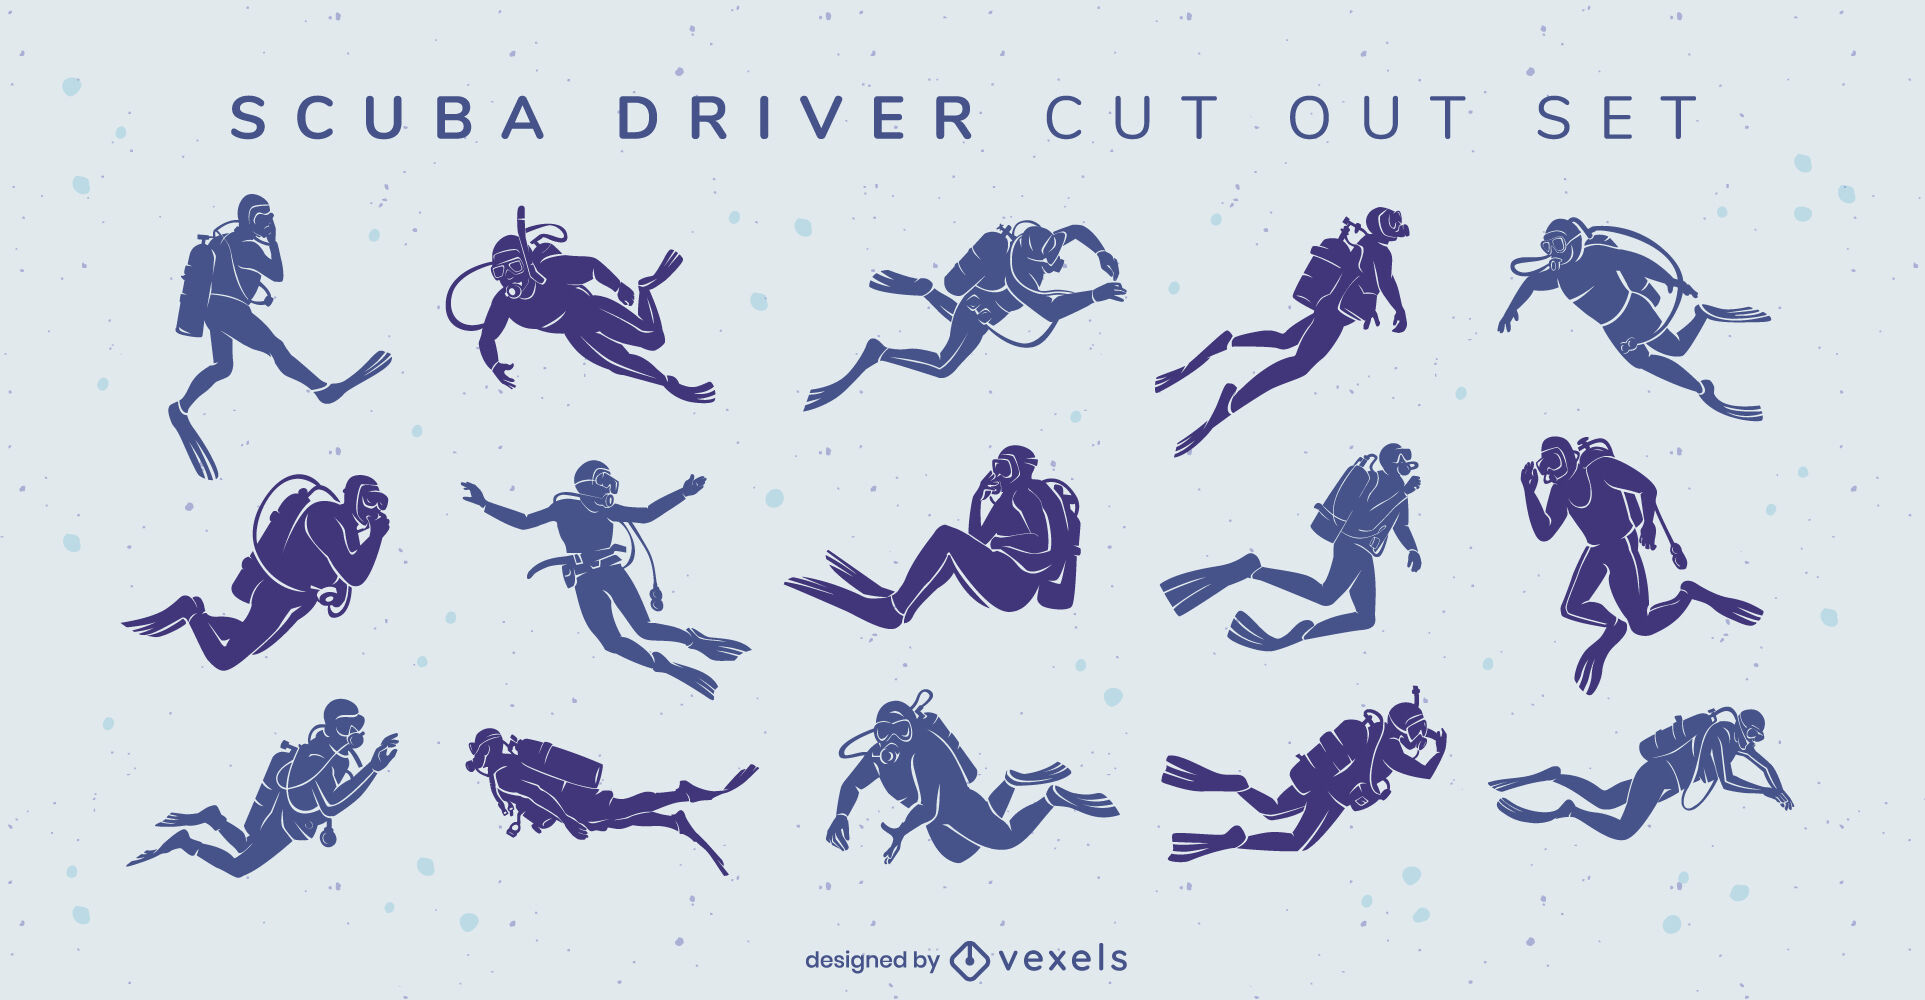 Scuba diving hobby people cut out set